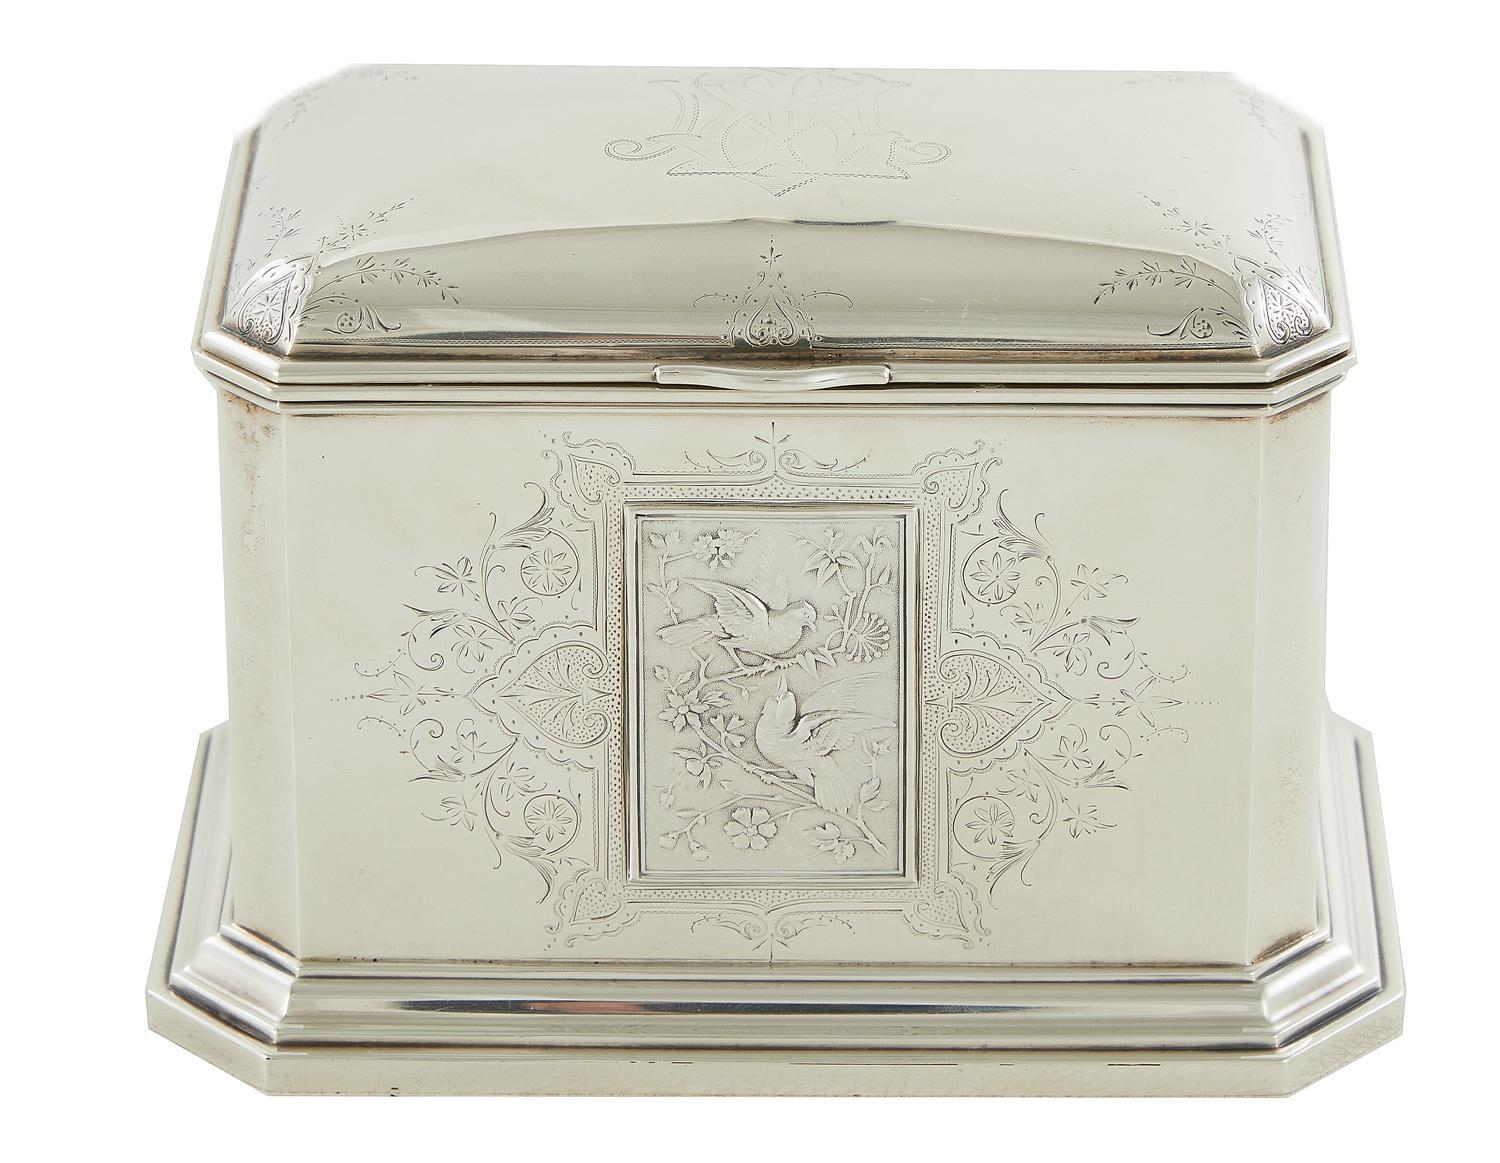 Starr & Marcus sterling silver tea caddy